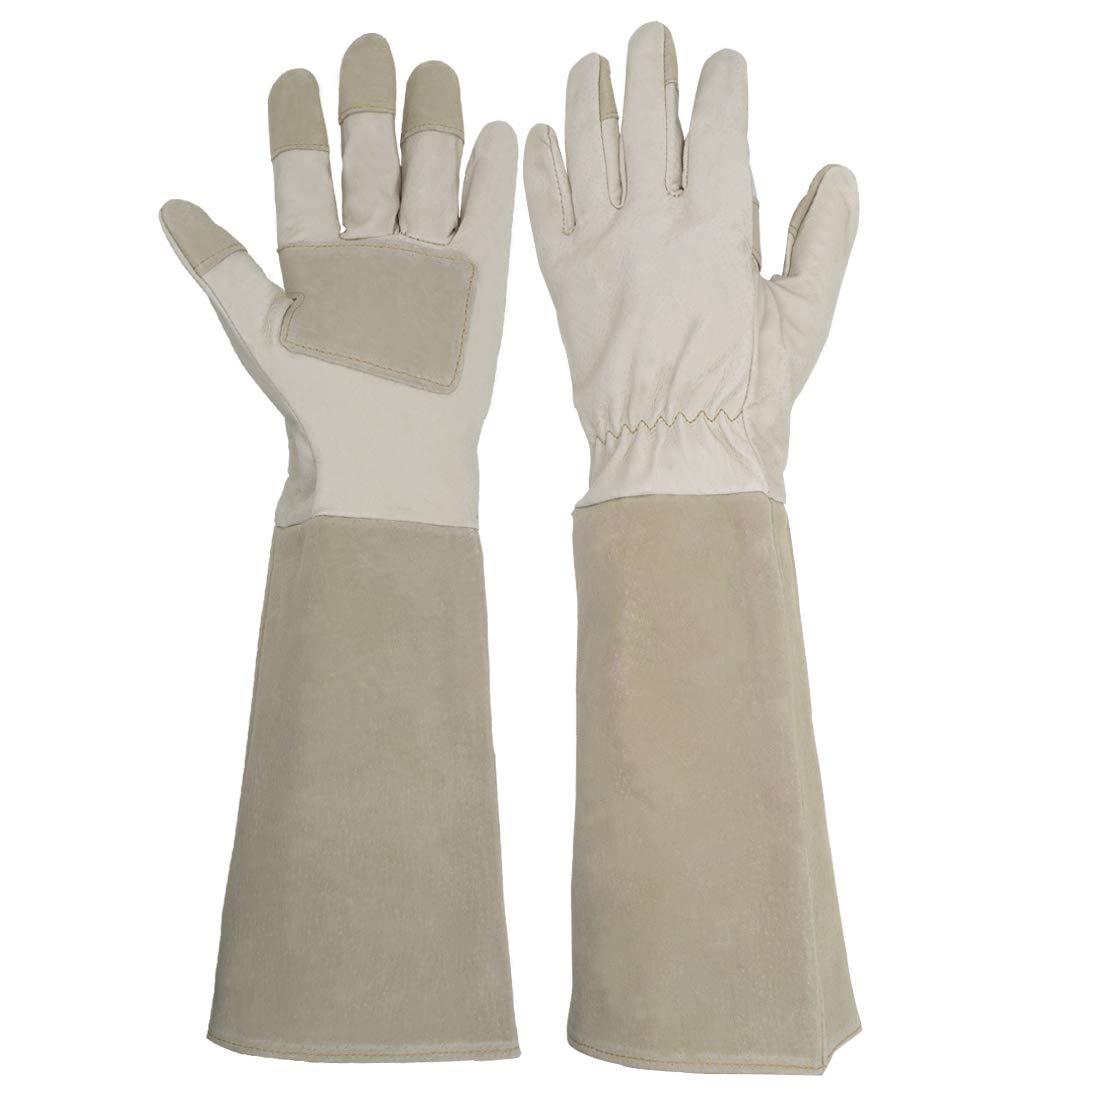 Long Sleeve Leather Gardening Gloves,Puncture resistant,Breathable Pigskin Leather Gauntlet,Rose Pruning Floral Gauntlet Garden Gloves For Women and Men (Medium, Beige)